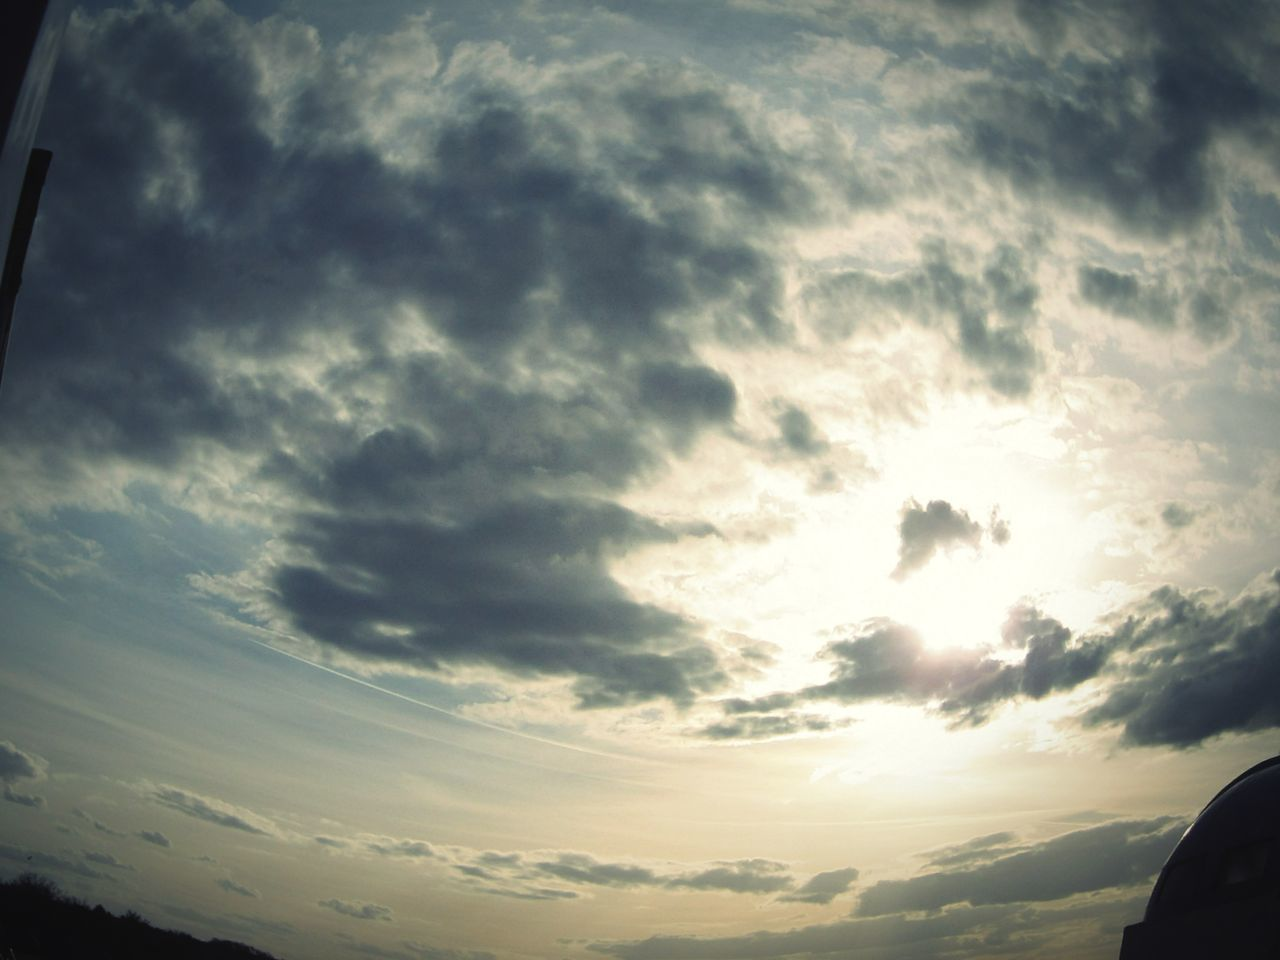 cloud - sky, sky, nature, sunset, beauty in nature, low angle view, tranquil scene, no people, scenics, tranquility, outdoors, day